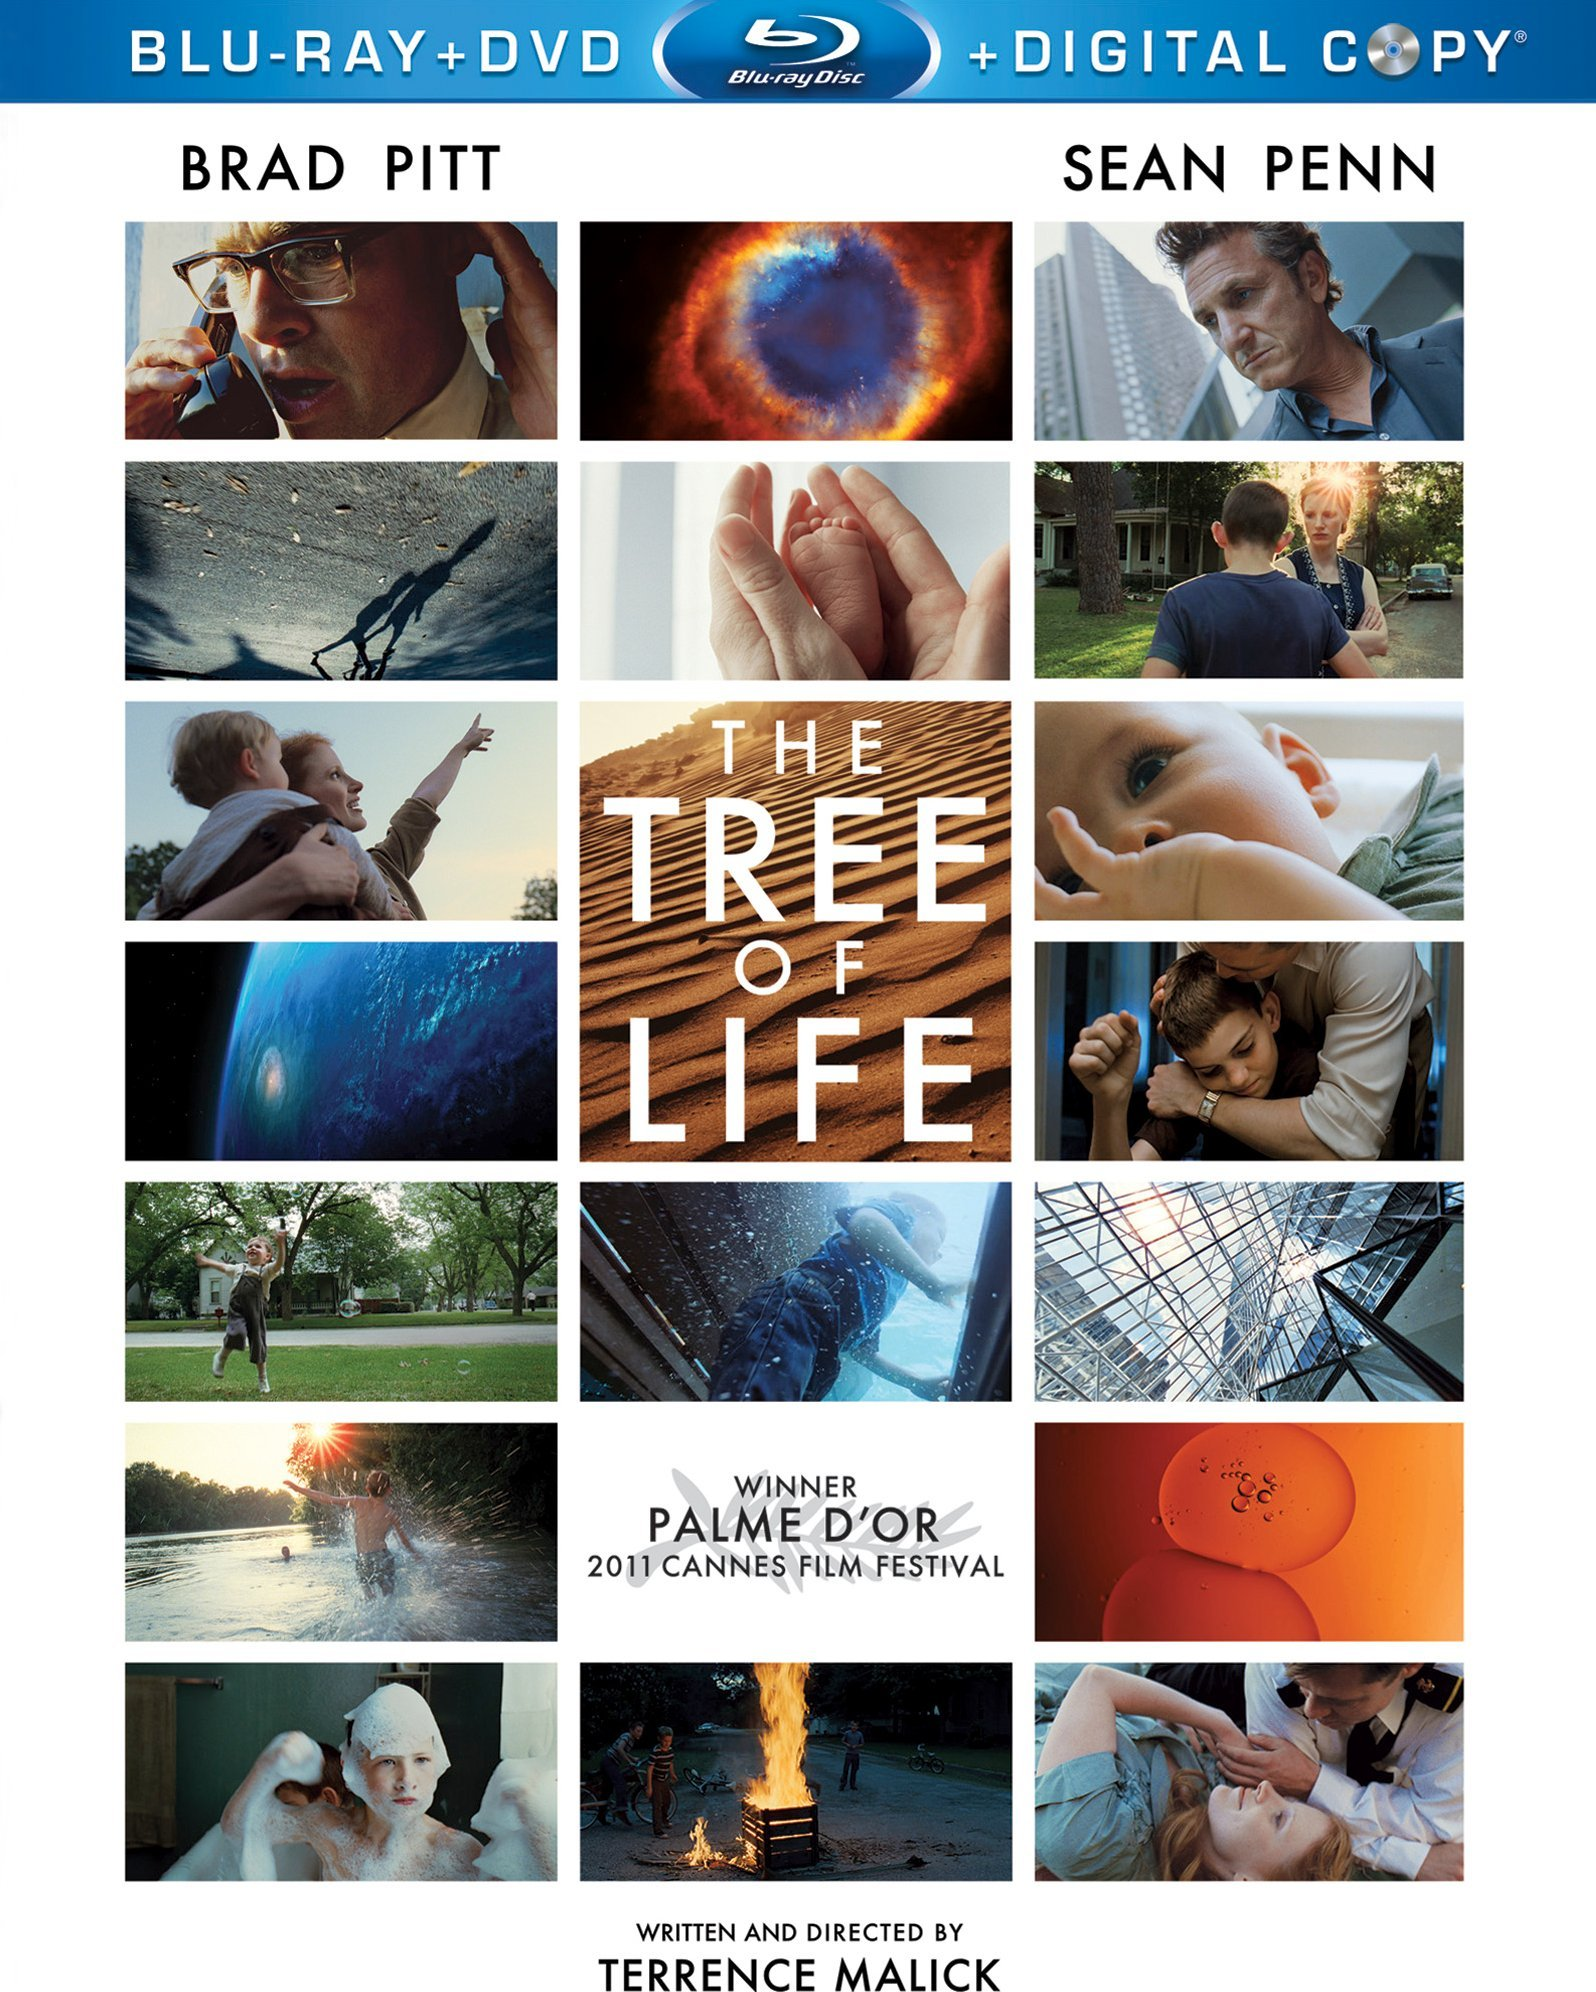 The Tree of Life (2011) poster image